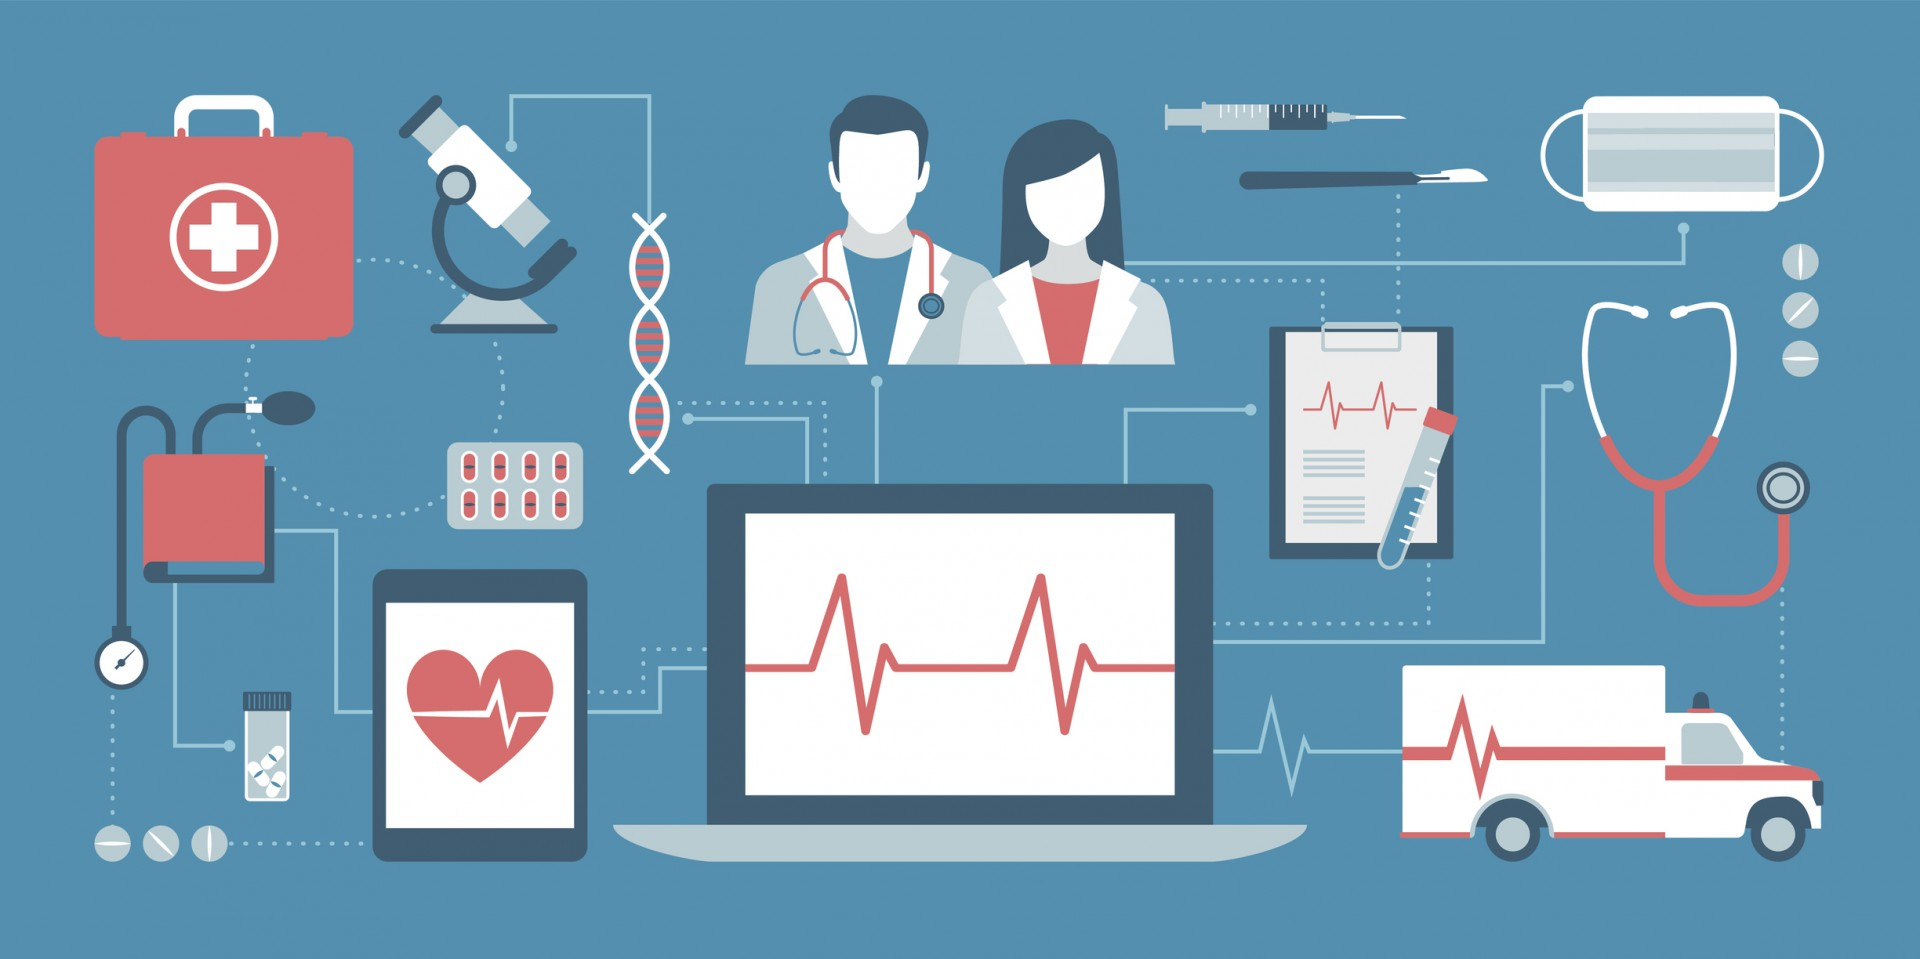 Healthcare Claims Management Market Expected to Grow at a Higher CAGR of 5.70% by 2025 : Cerner Corporation, Allscripts Healthcare Solutions, Eclinicalworks, Optum, Inc., Mckesson Corporation